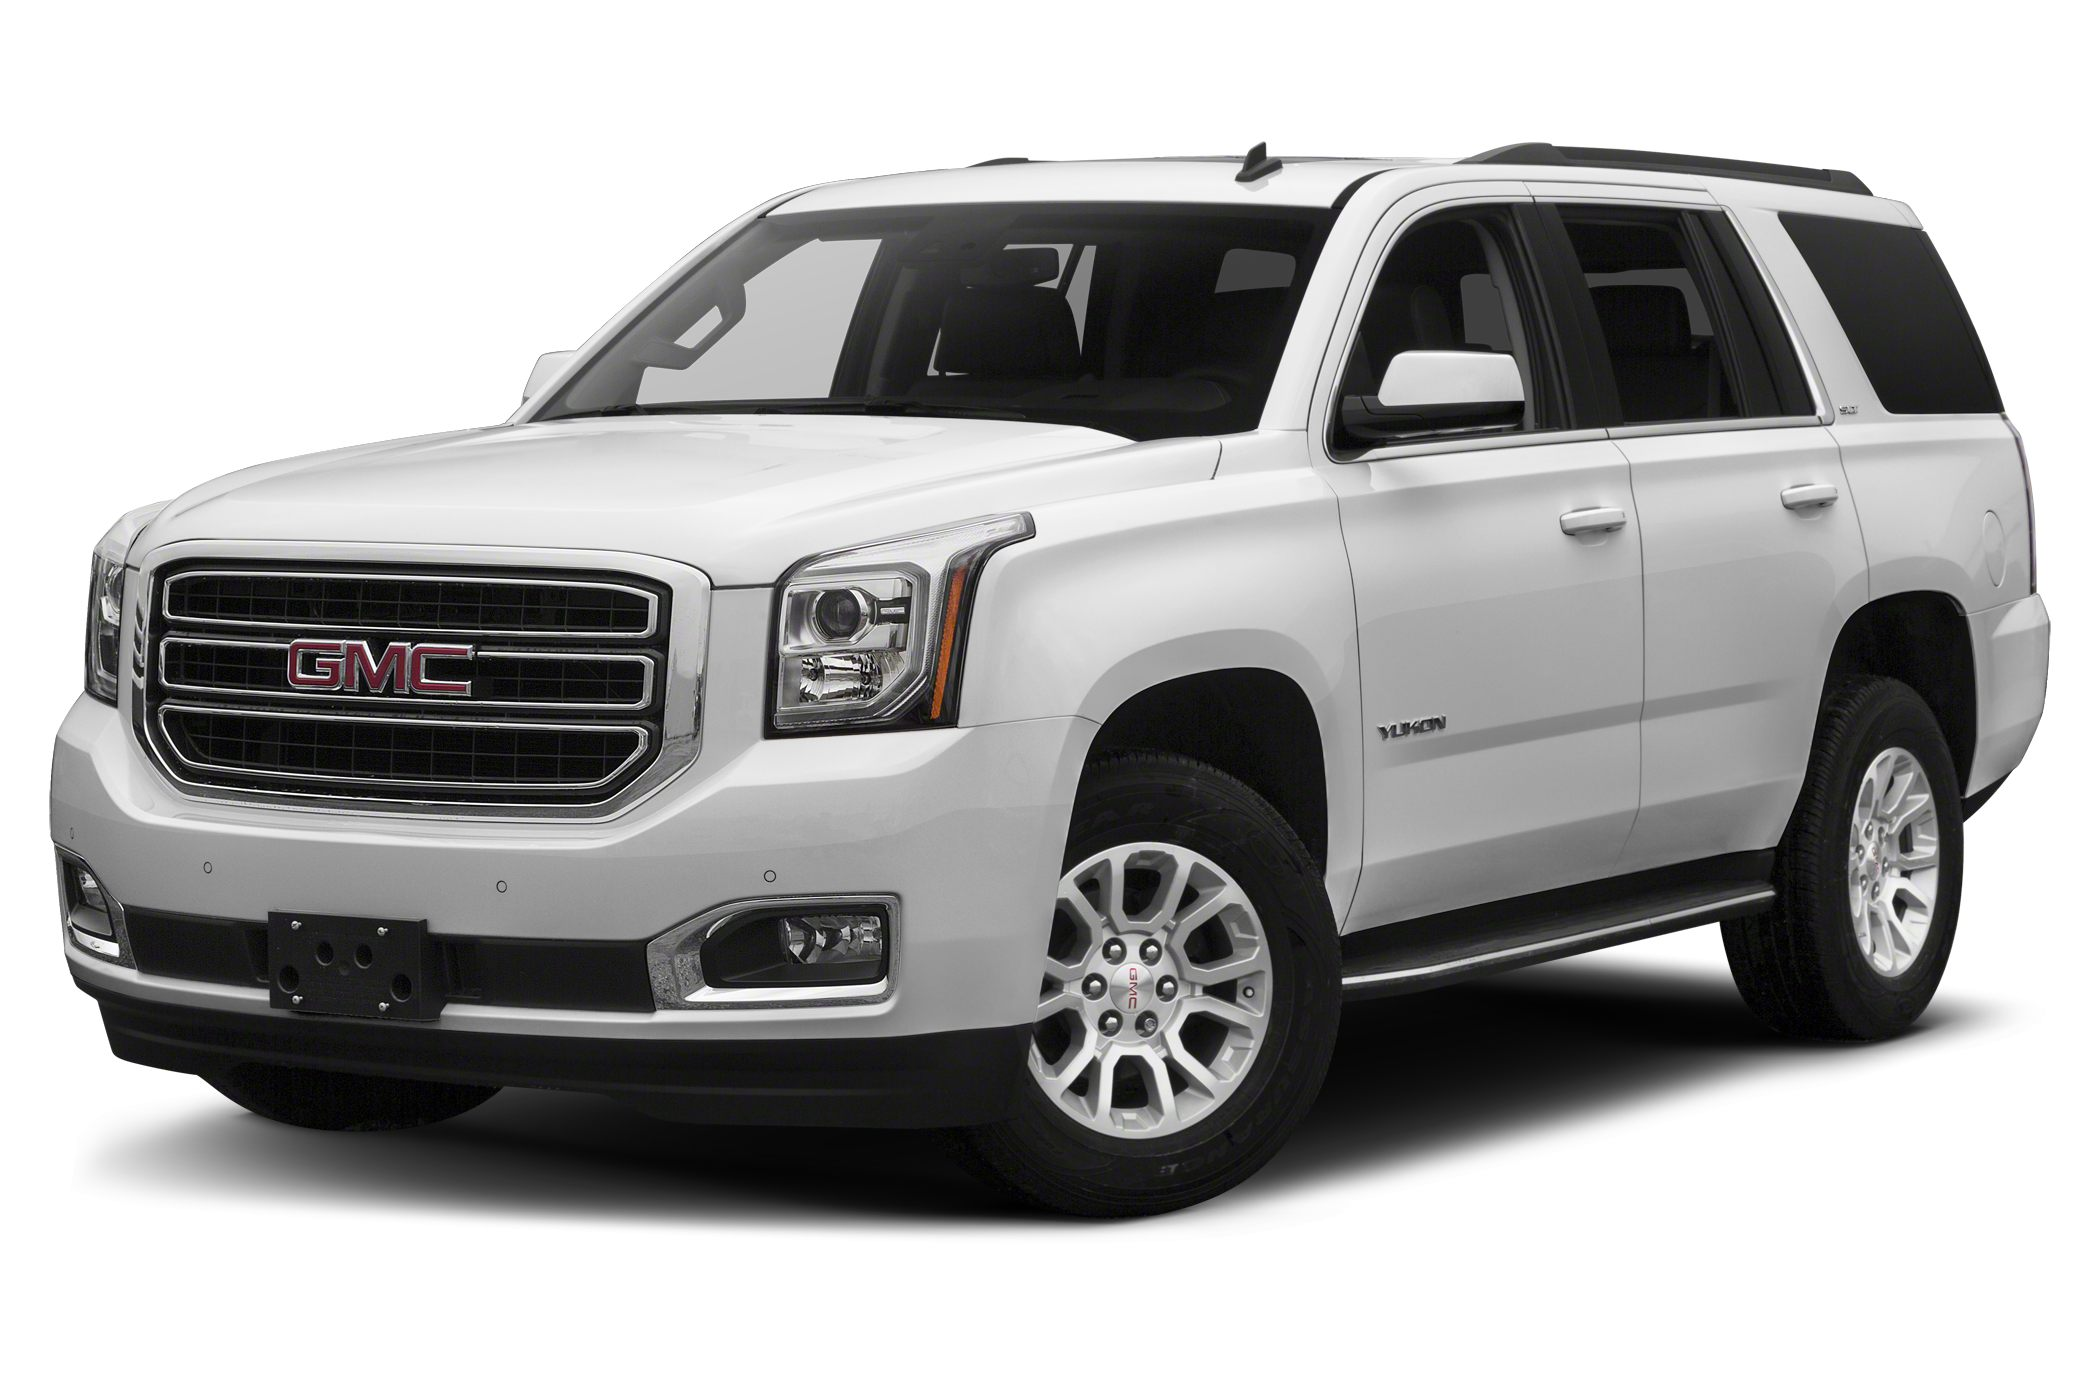 2015 GMC Yukon SLT SUV for sale in Gaithersburg for $65,470 with 0 miles.